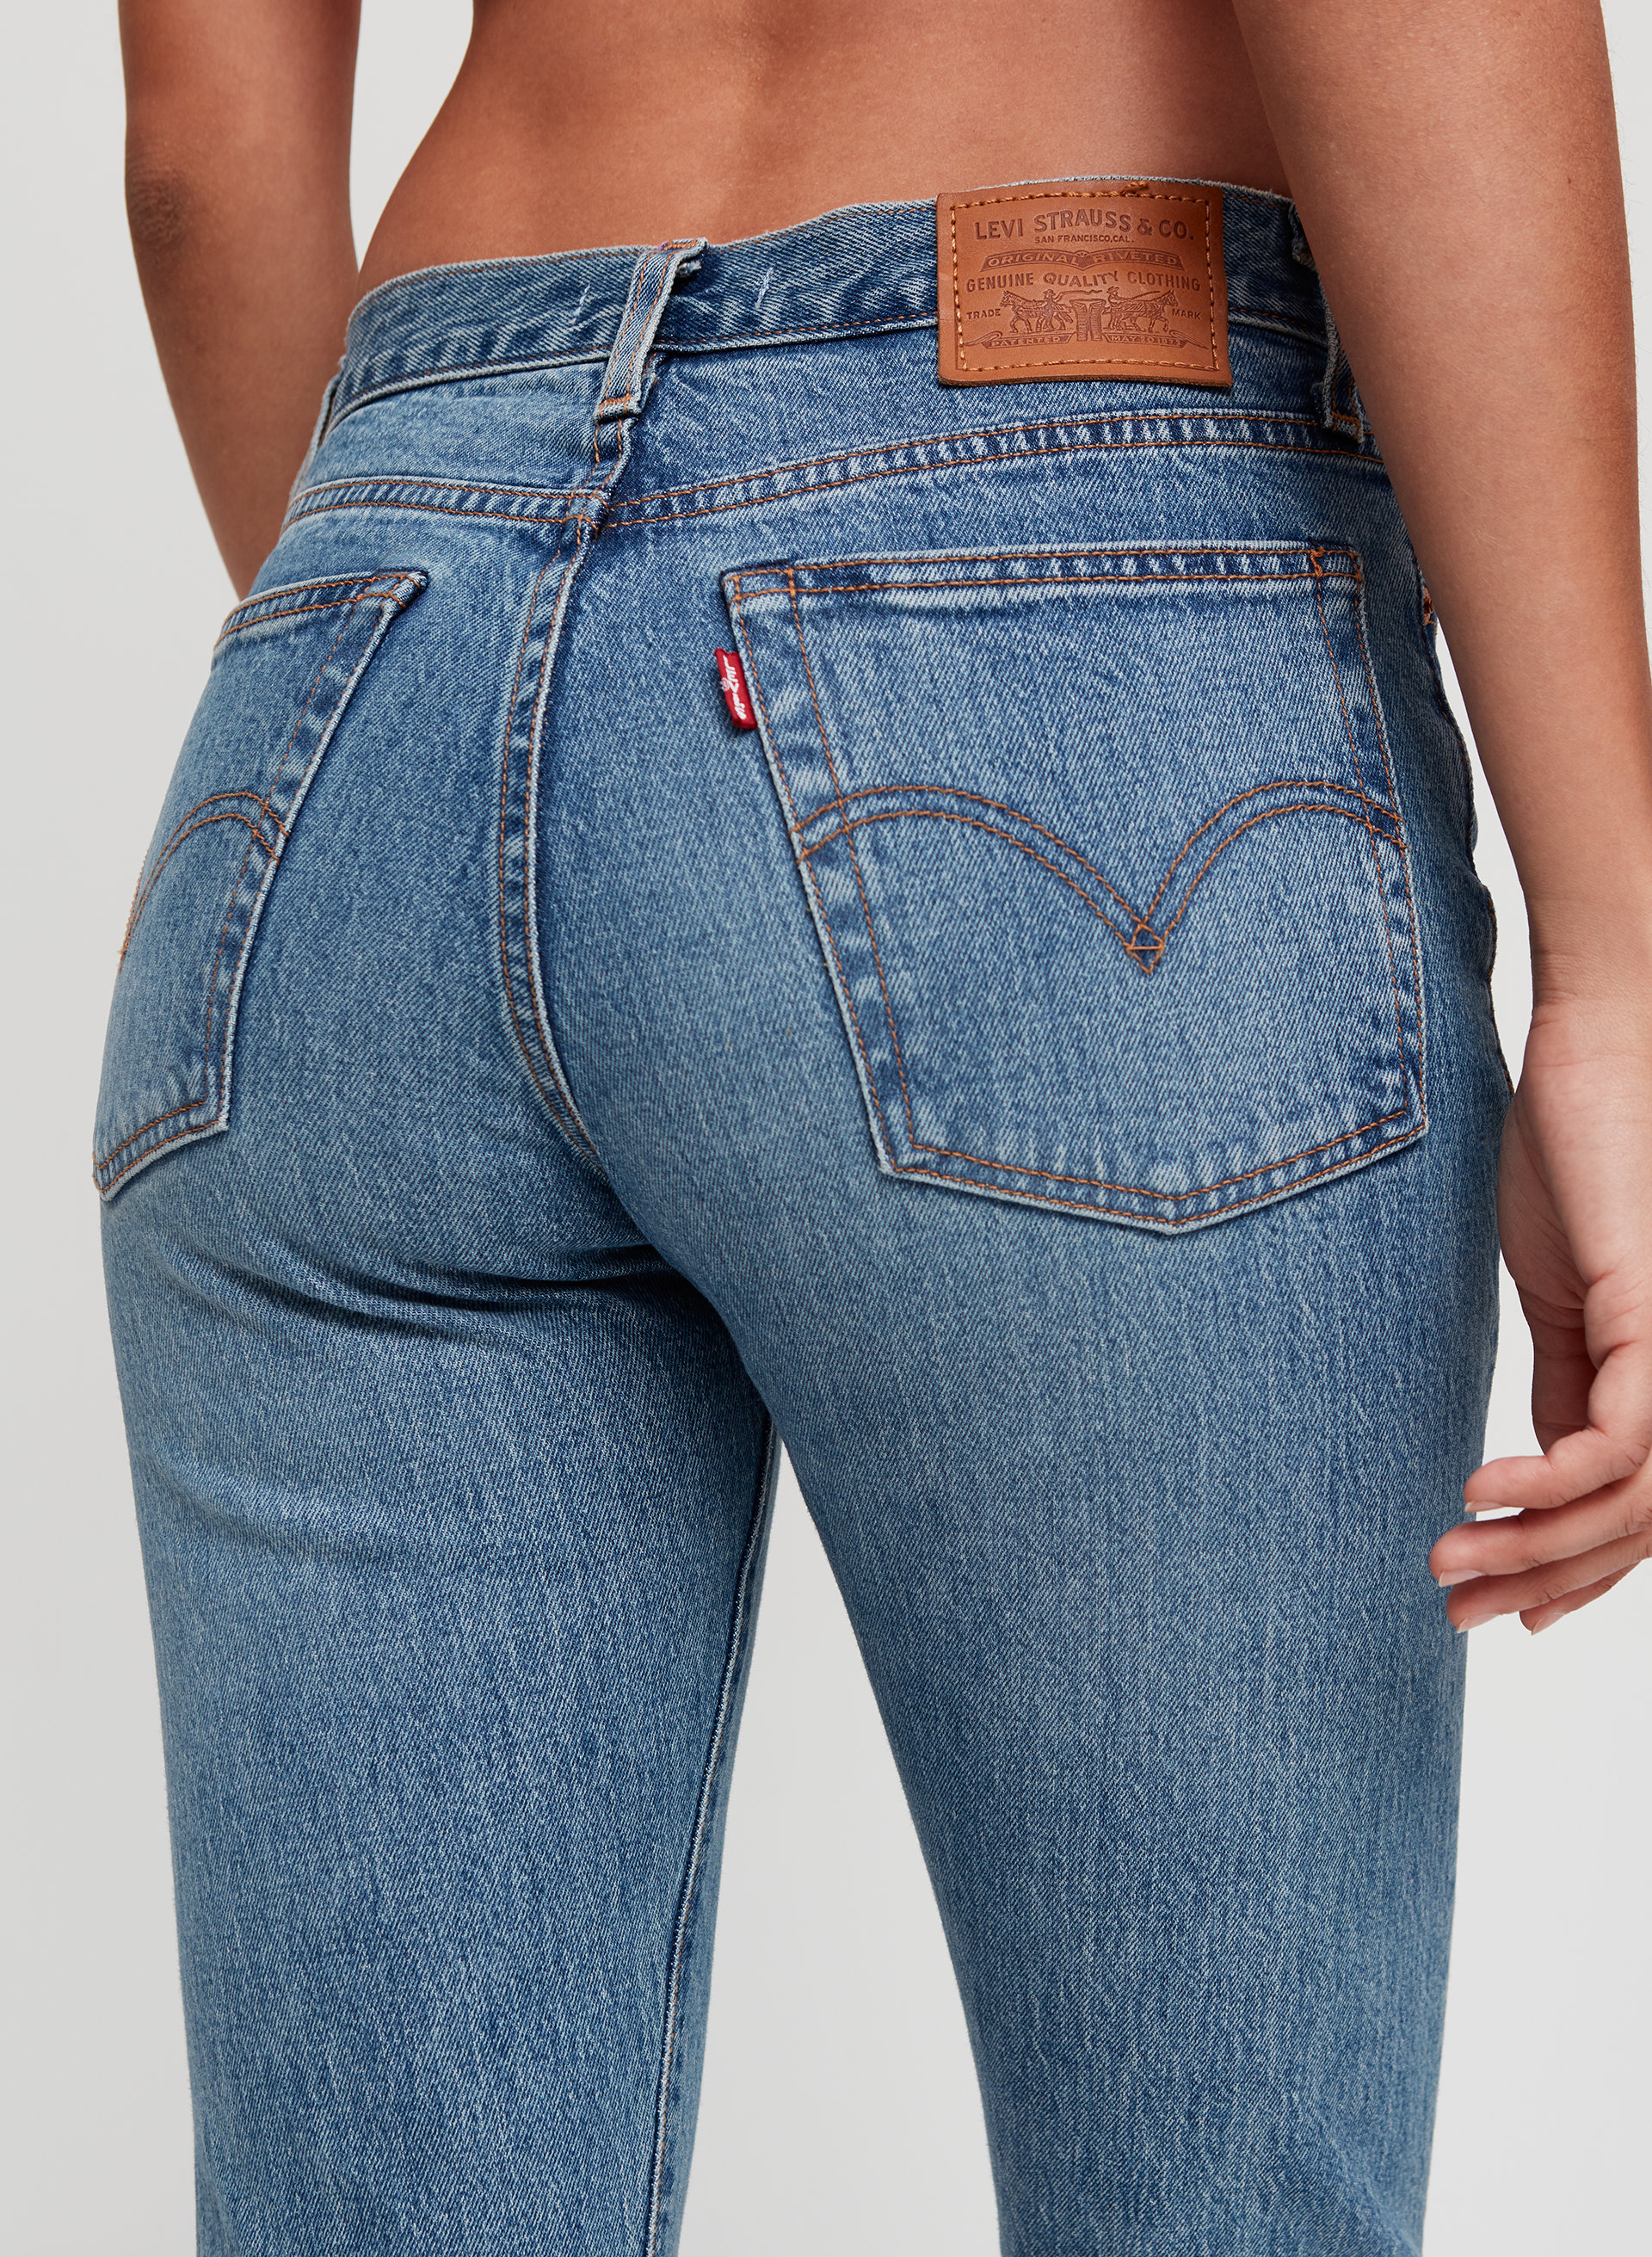 43c7831b WEDGIE ICON - High-waisted, skinny jean